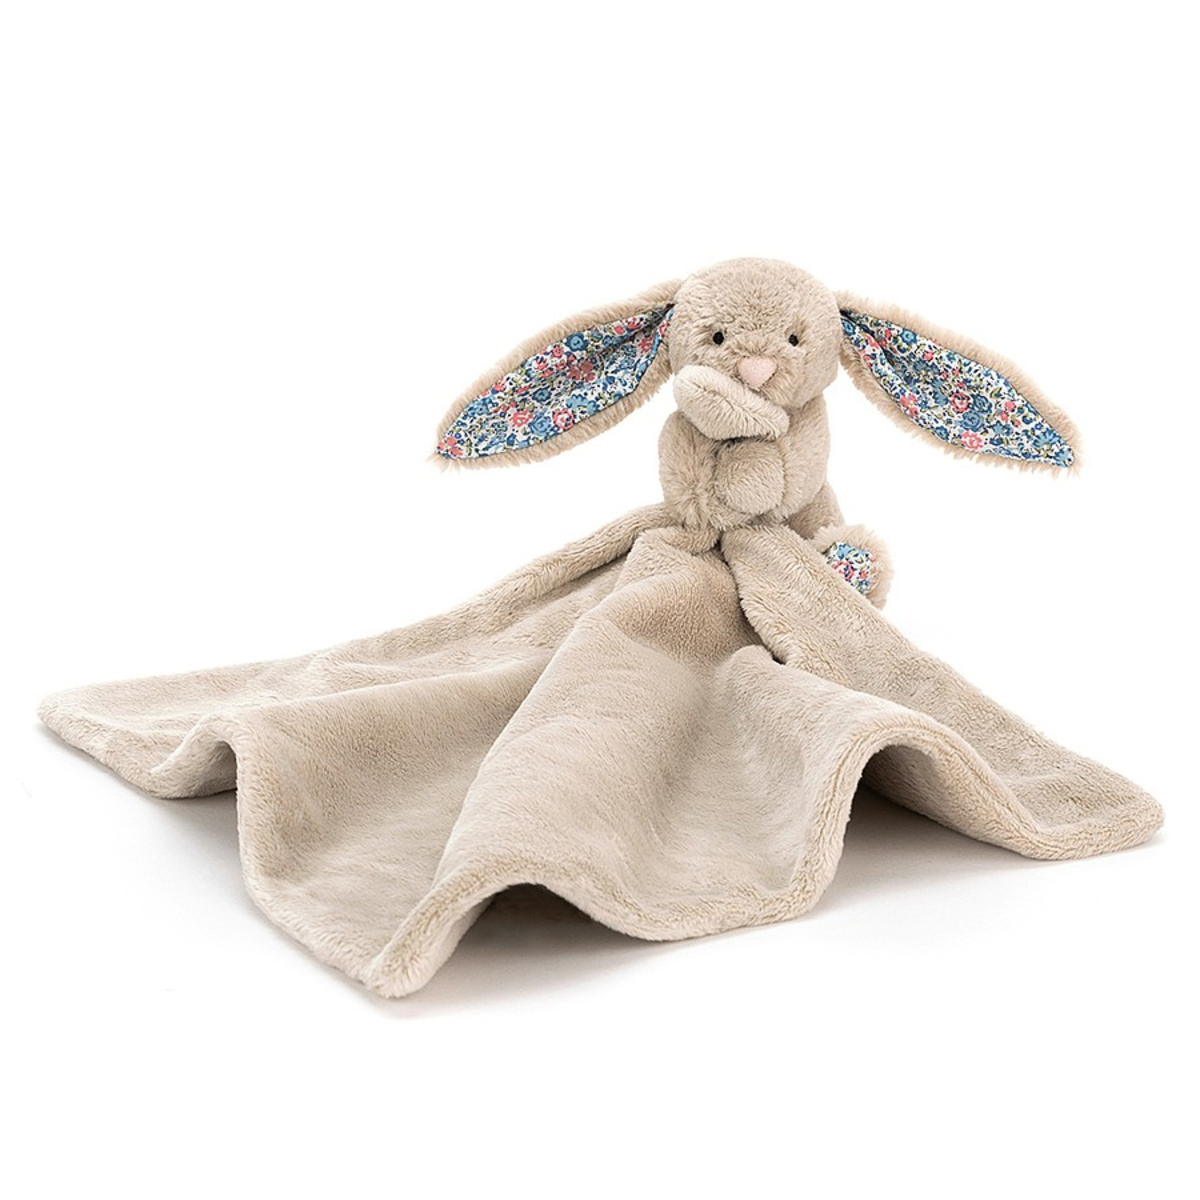 Doudou Blossom Beige Bunny Soother Blossom Beige Bunny Soother